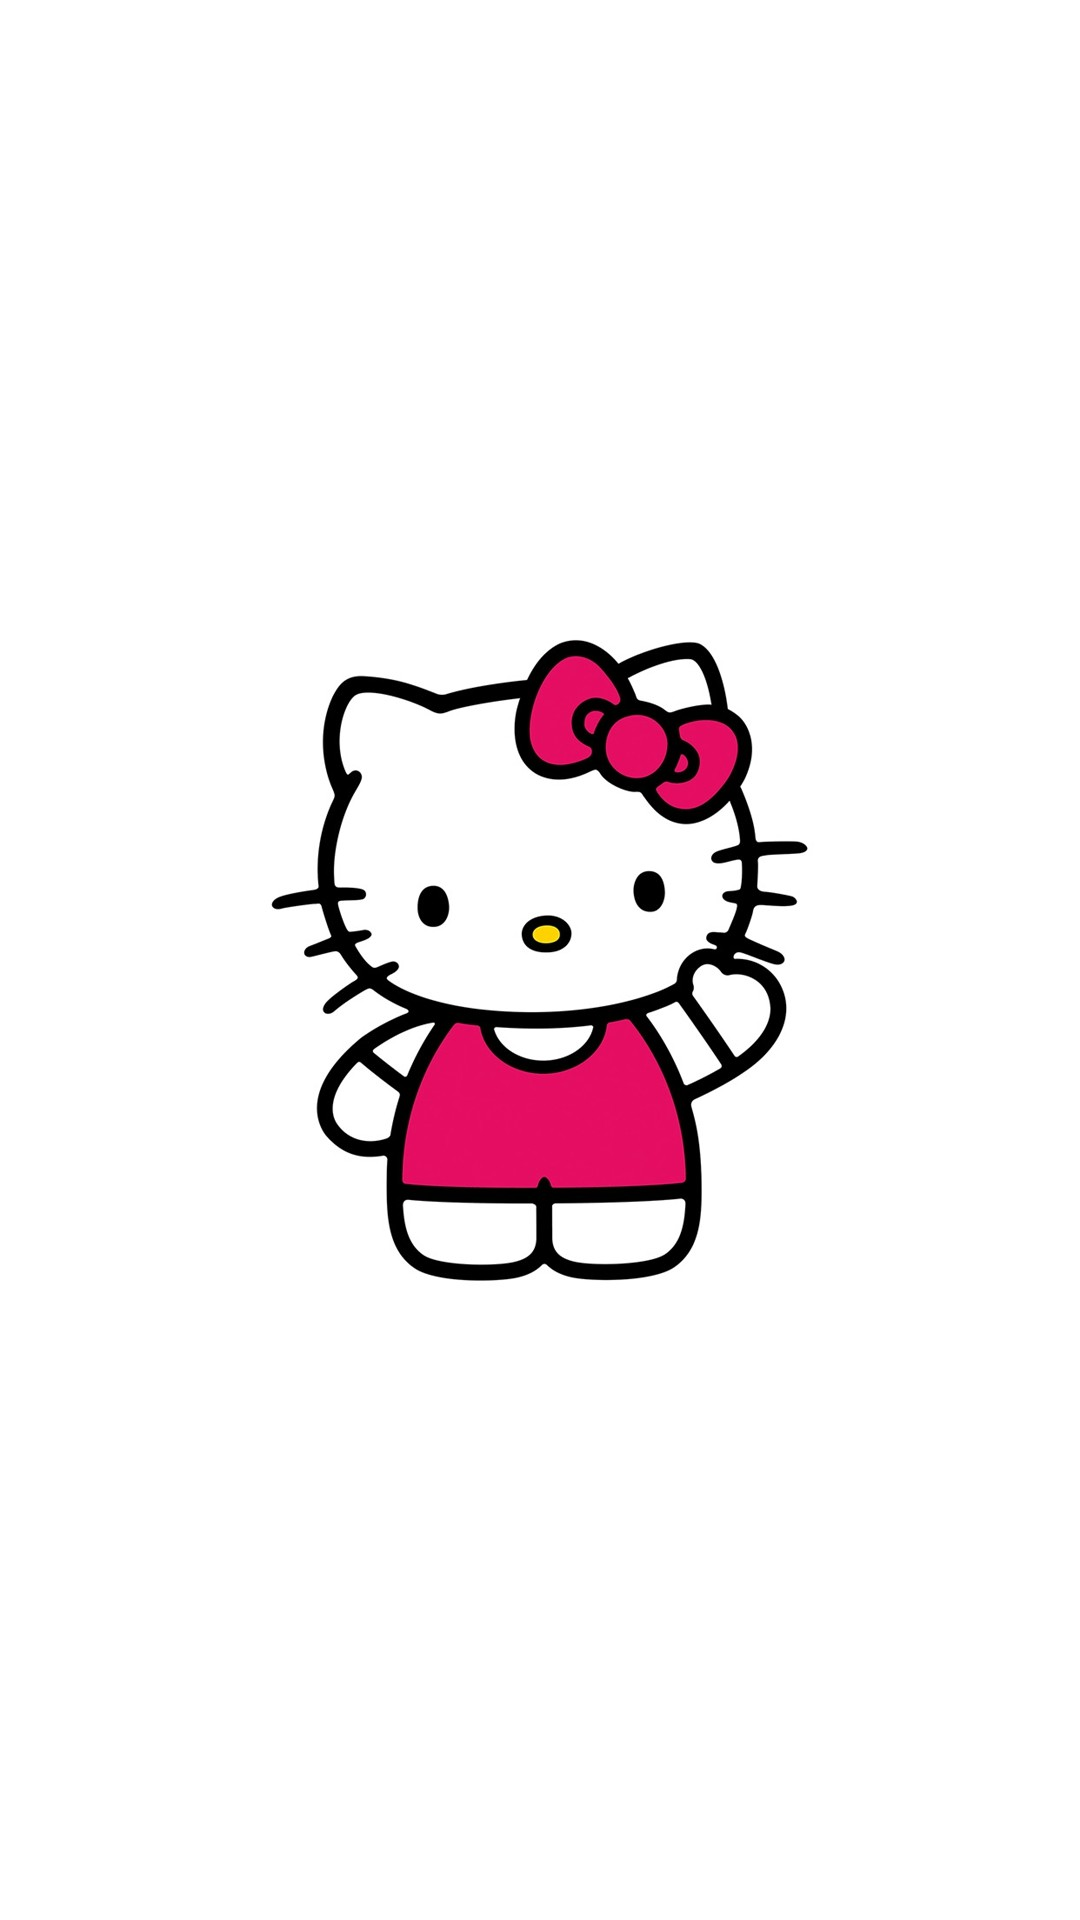 Amazing Wallpaper Hello Kitty Samsung Galaxy - 725166-hello-kitty-wallpaper-for-pc-1080x1920-mobile  Snapshot_166893.jpg